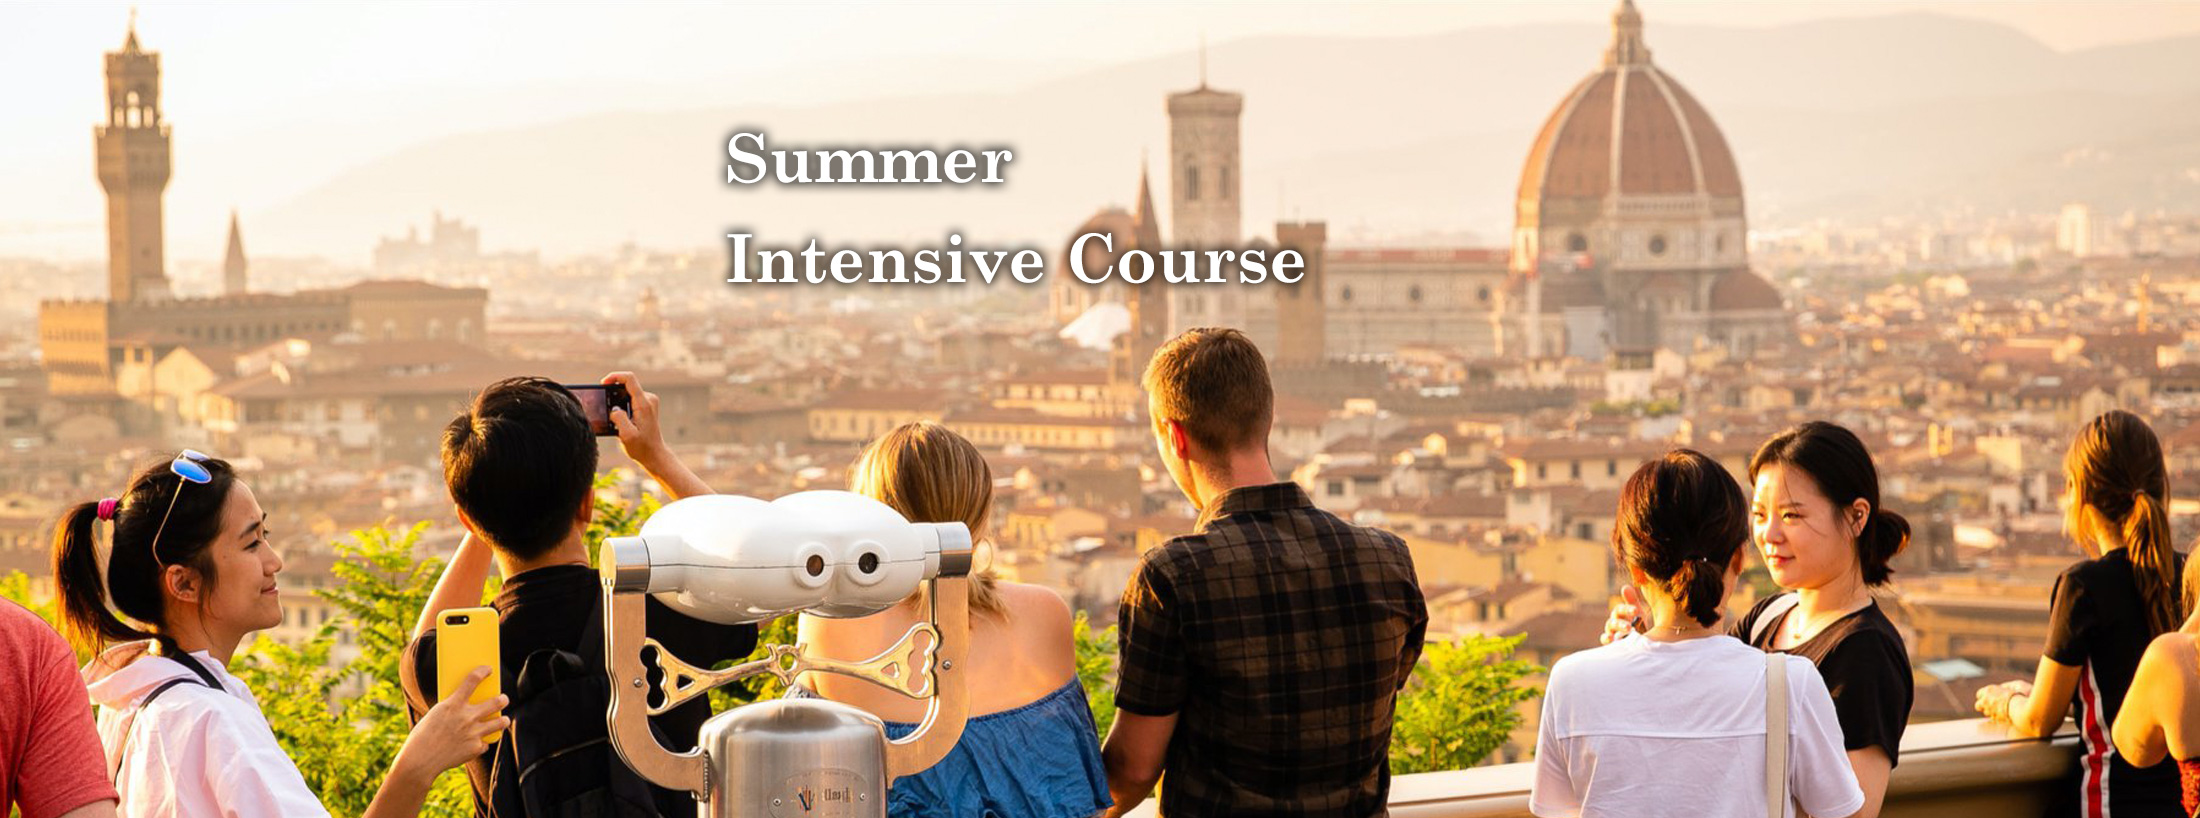 Summer Intensive Course